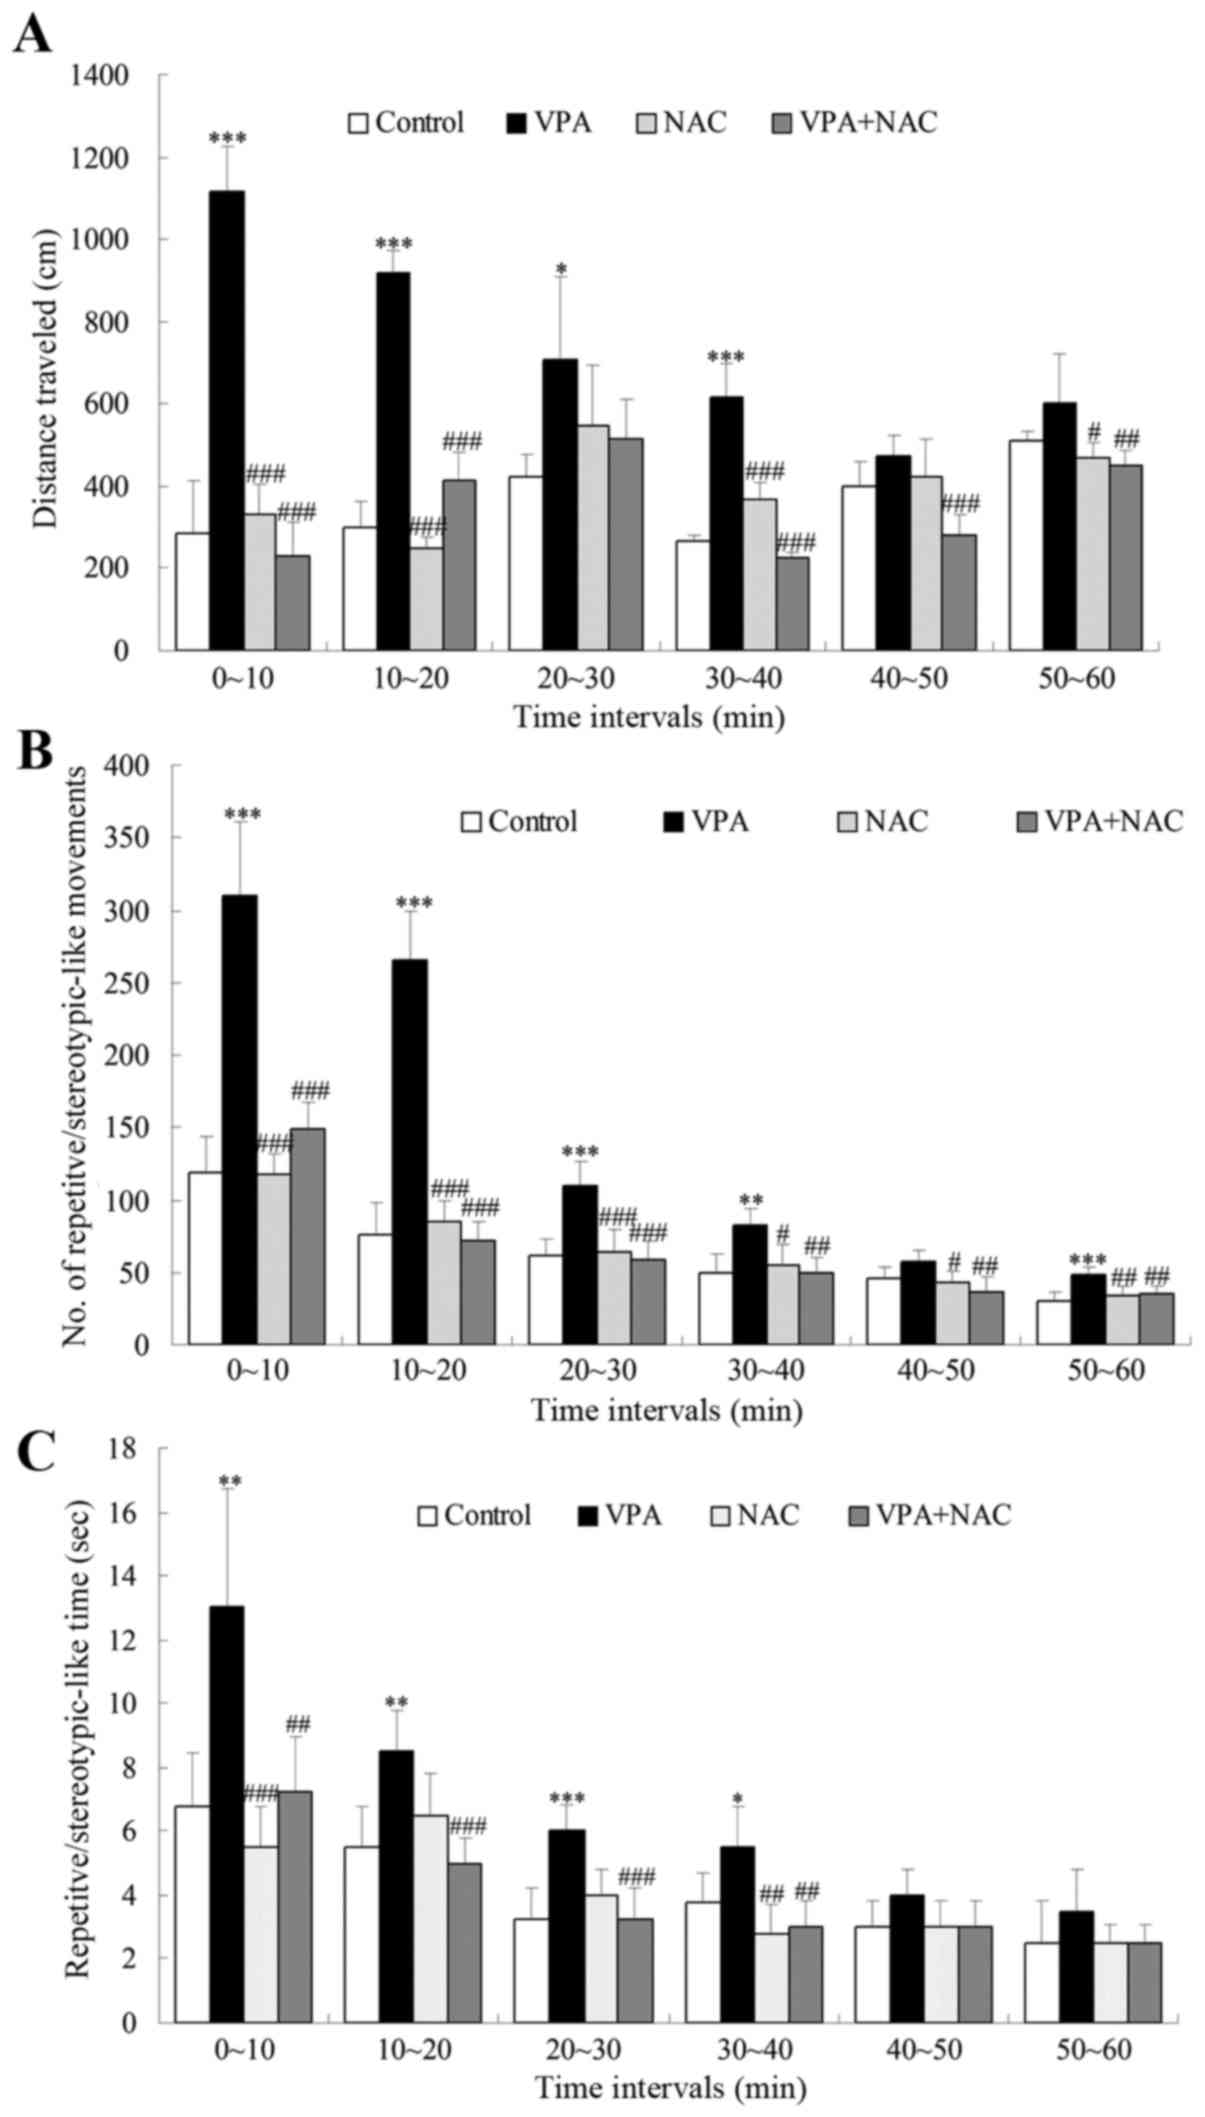 N-acetylcysteine ameliorates repetitive/stereotypic behavior